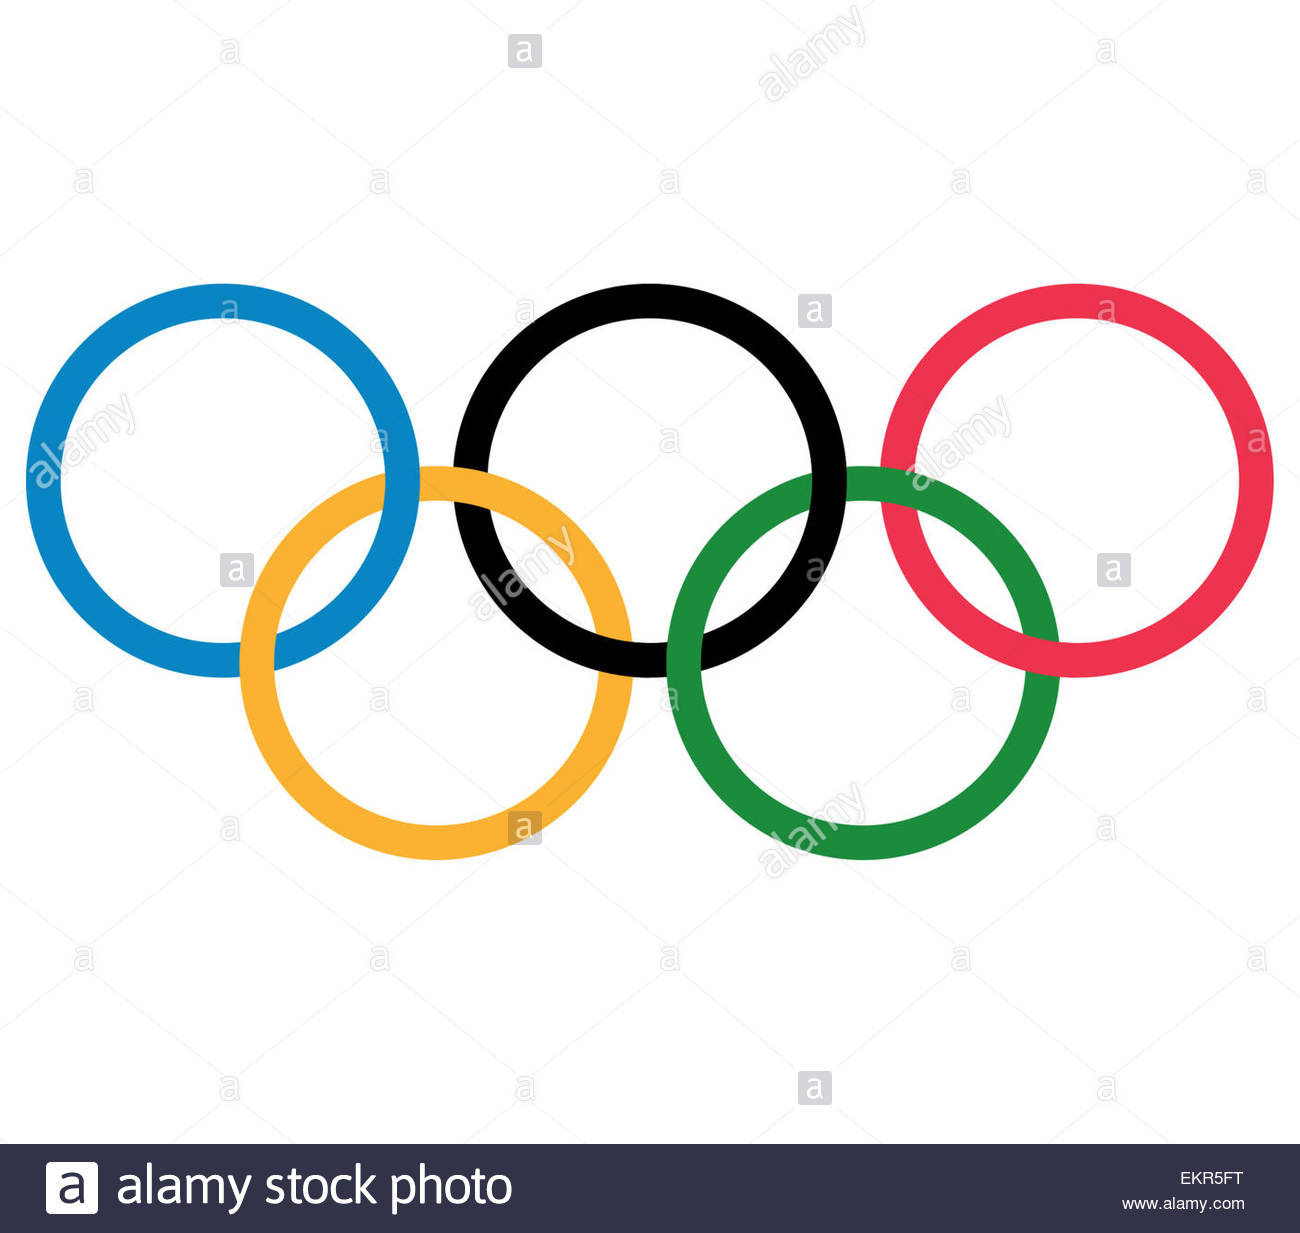 Olympic logo icon symbol - Stock Image